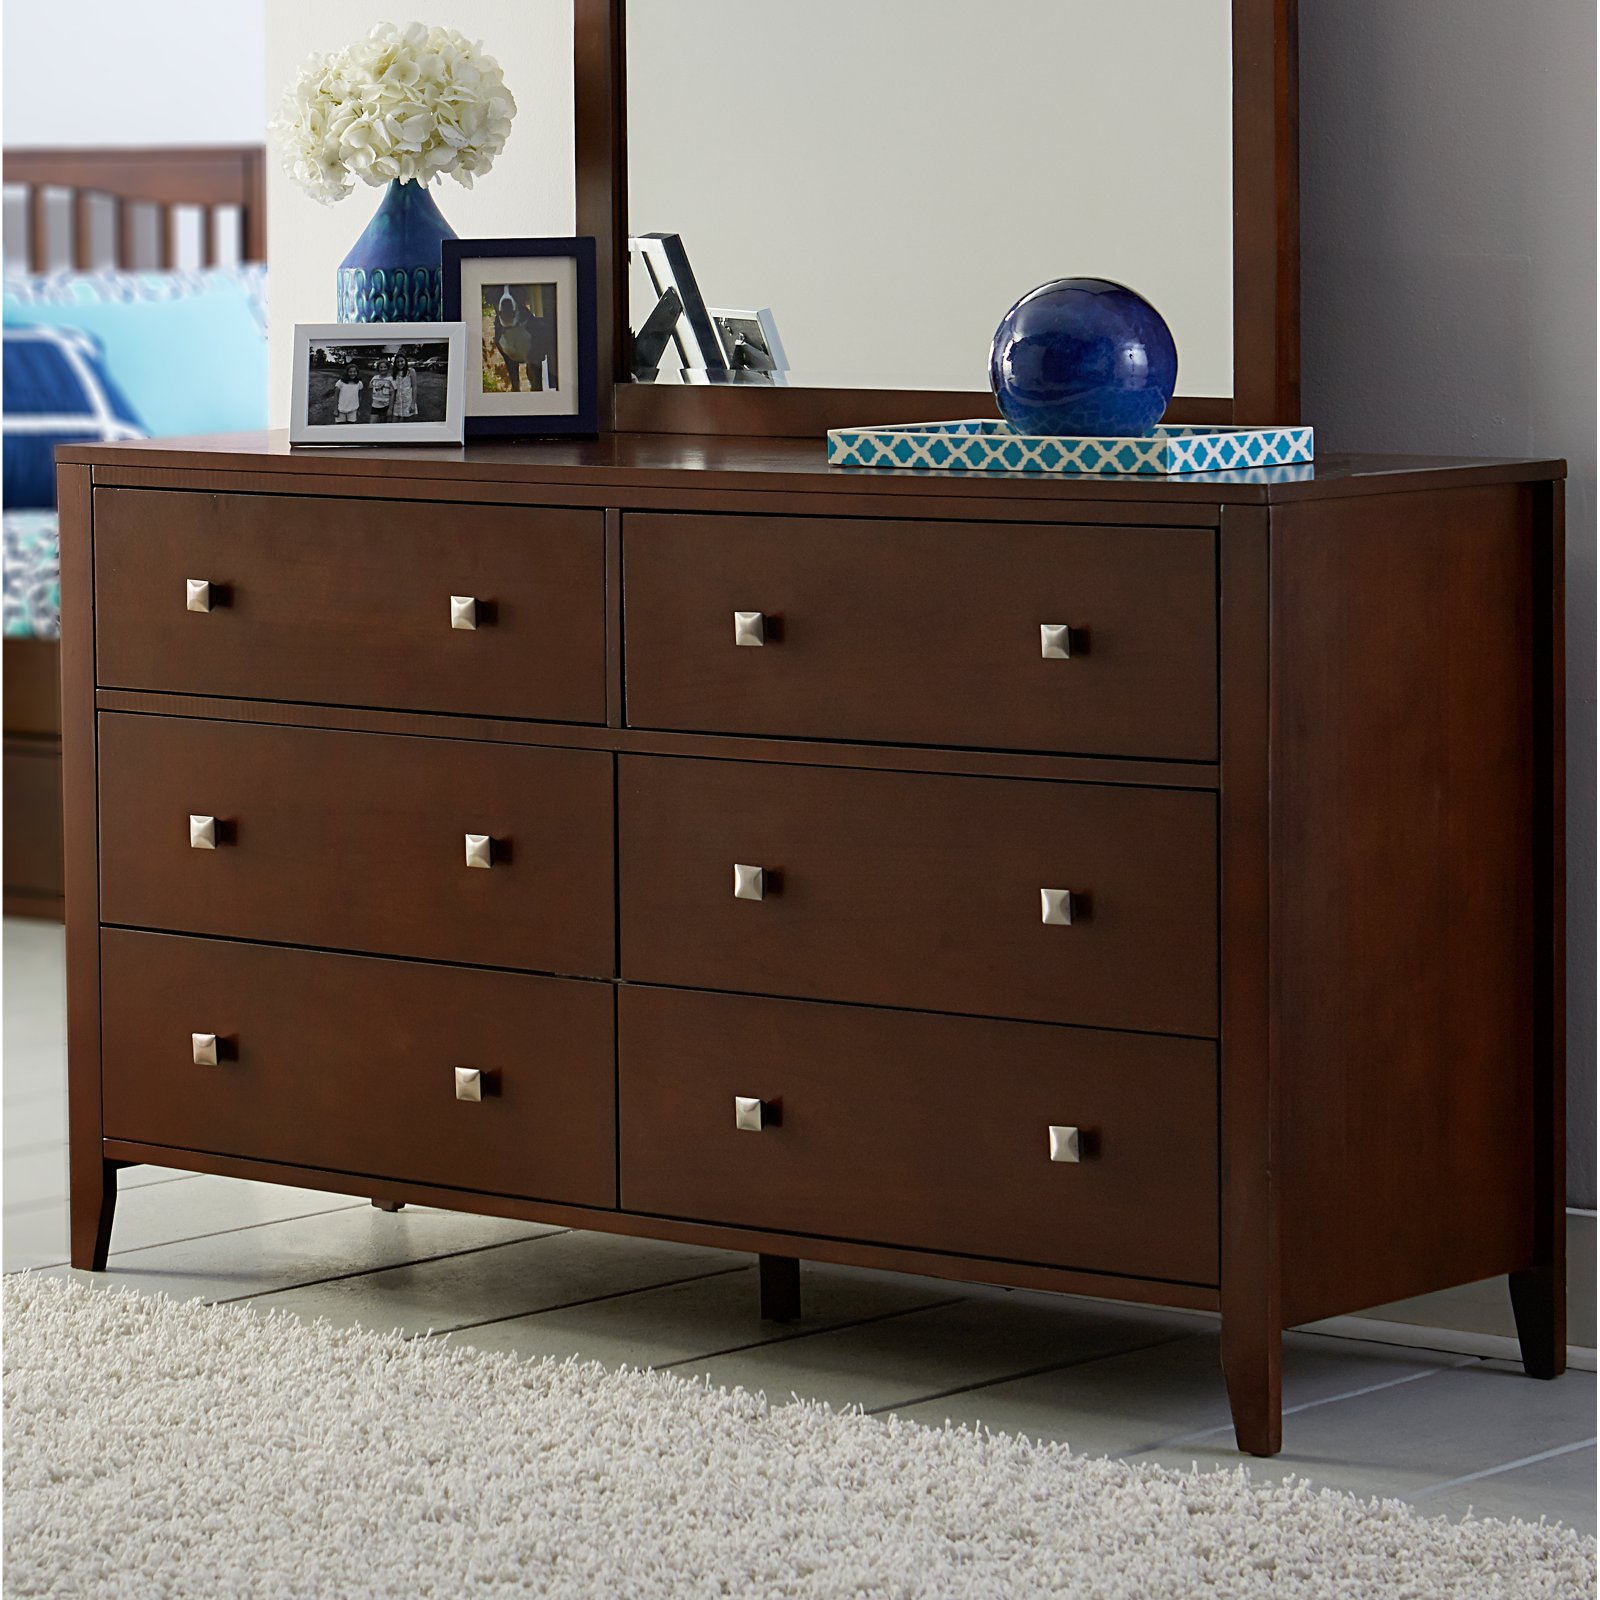 NE Kids Pulse 6 Drawer Dresser